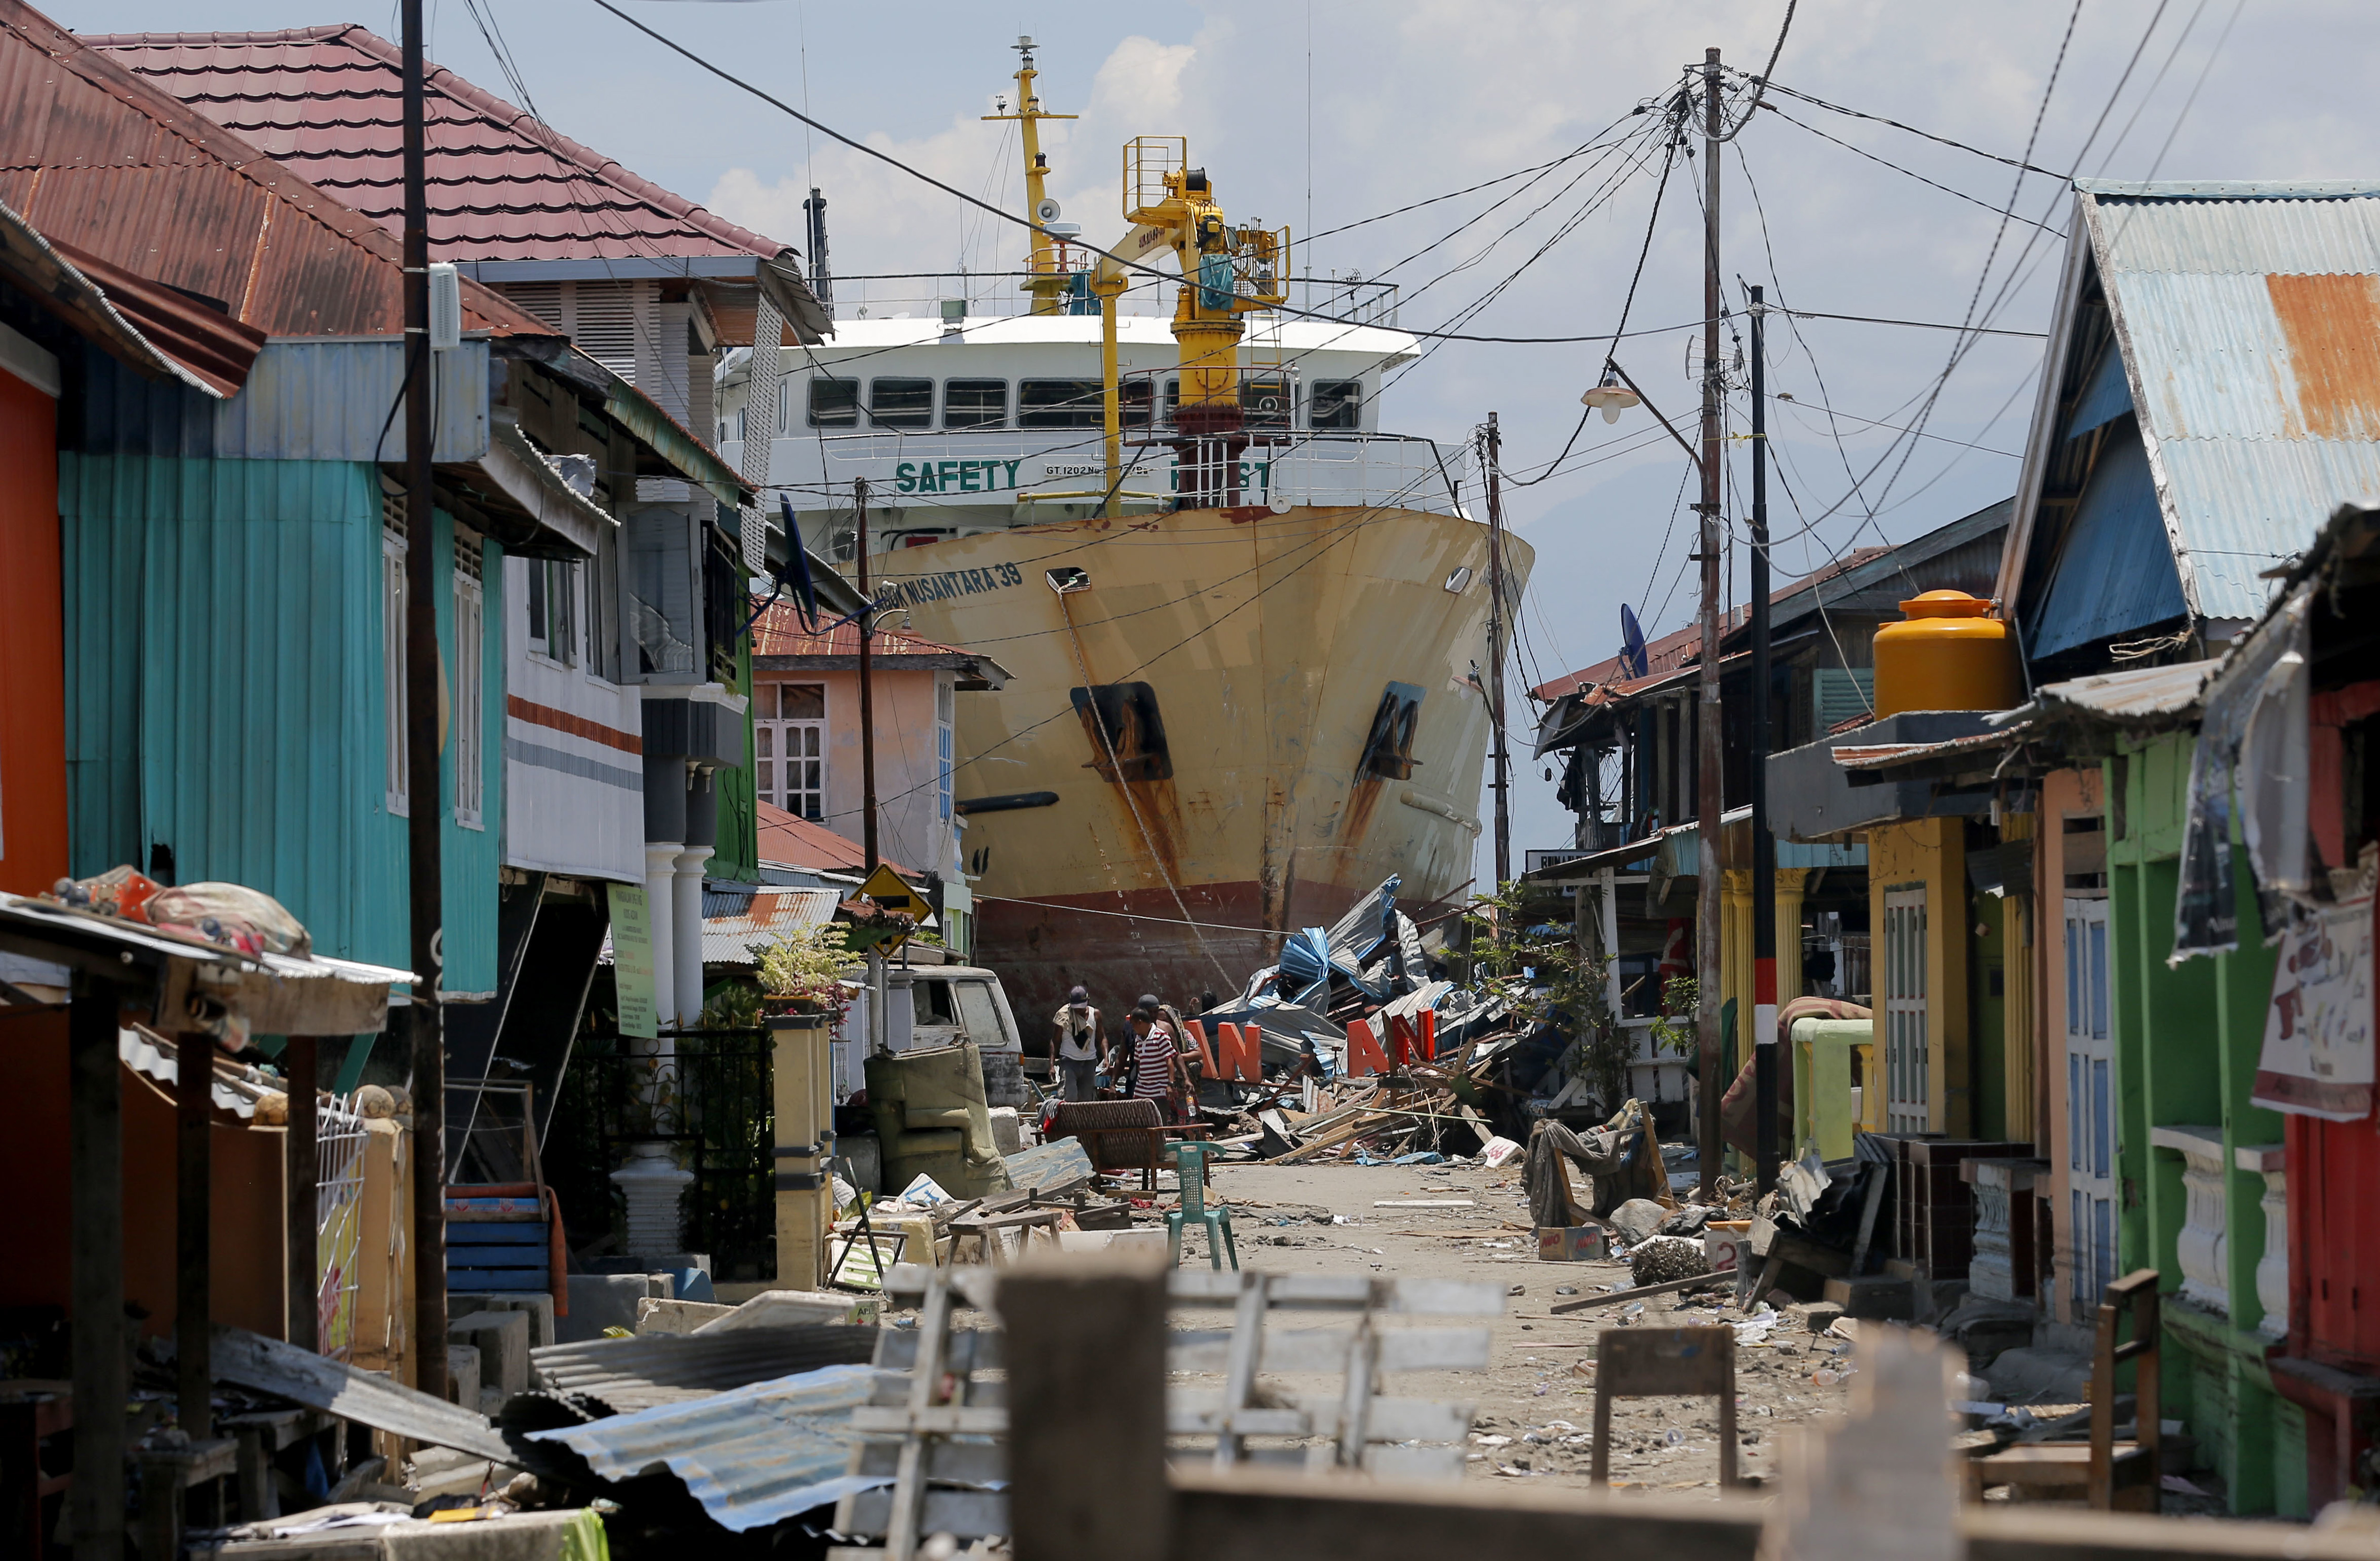 Neighborhood in Donggala, Central Sulawesi, Indonesia after earthquke